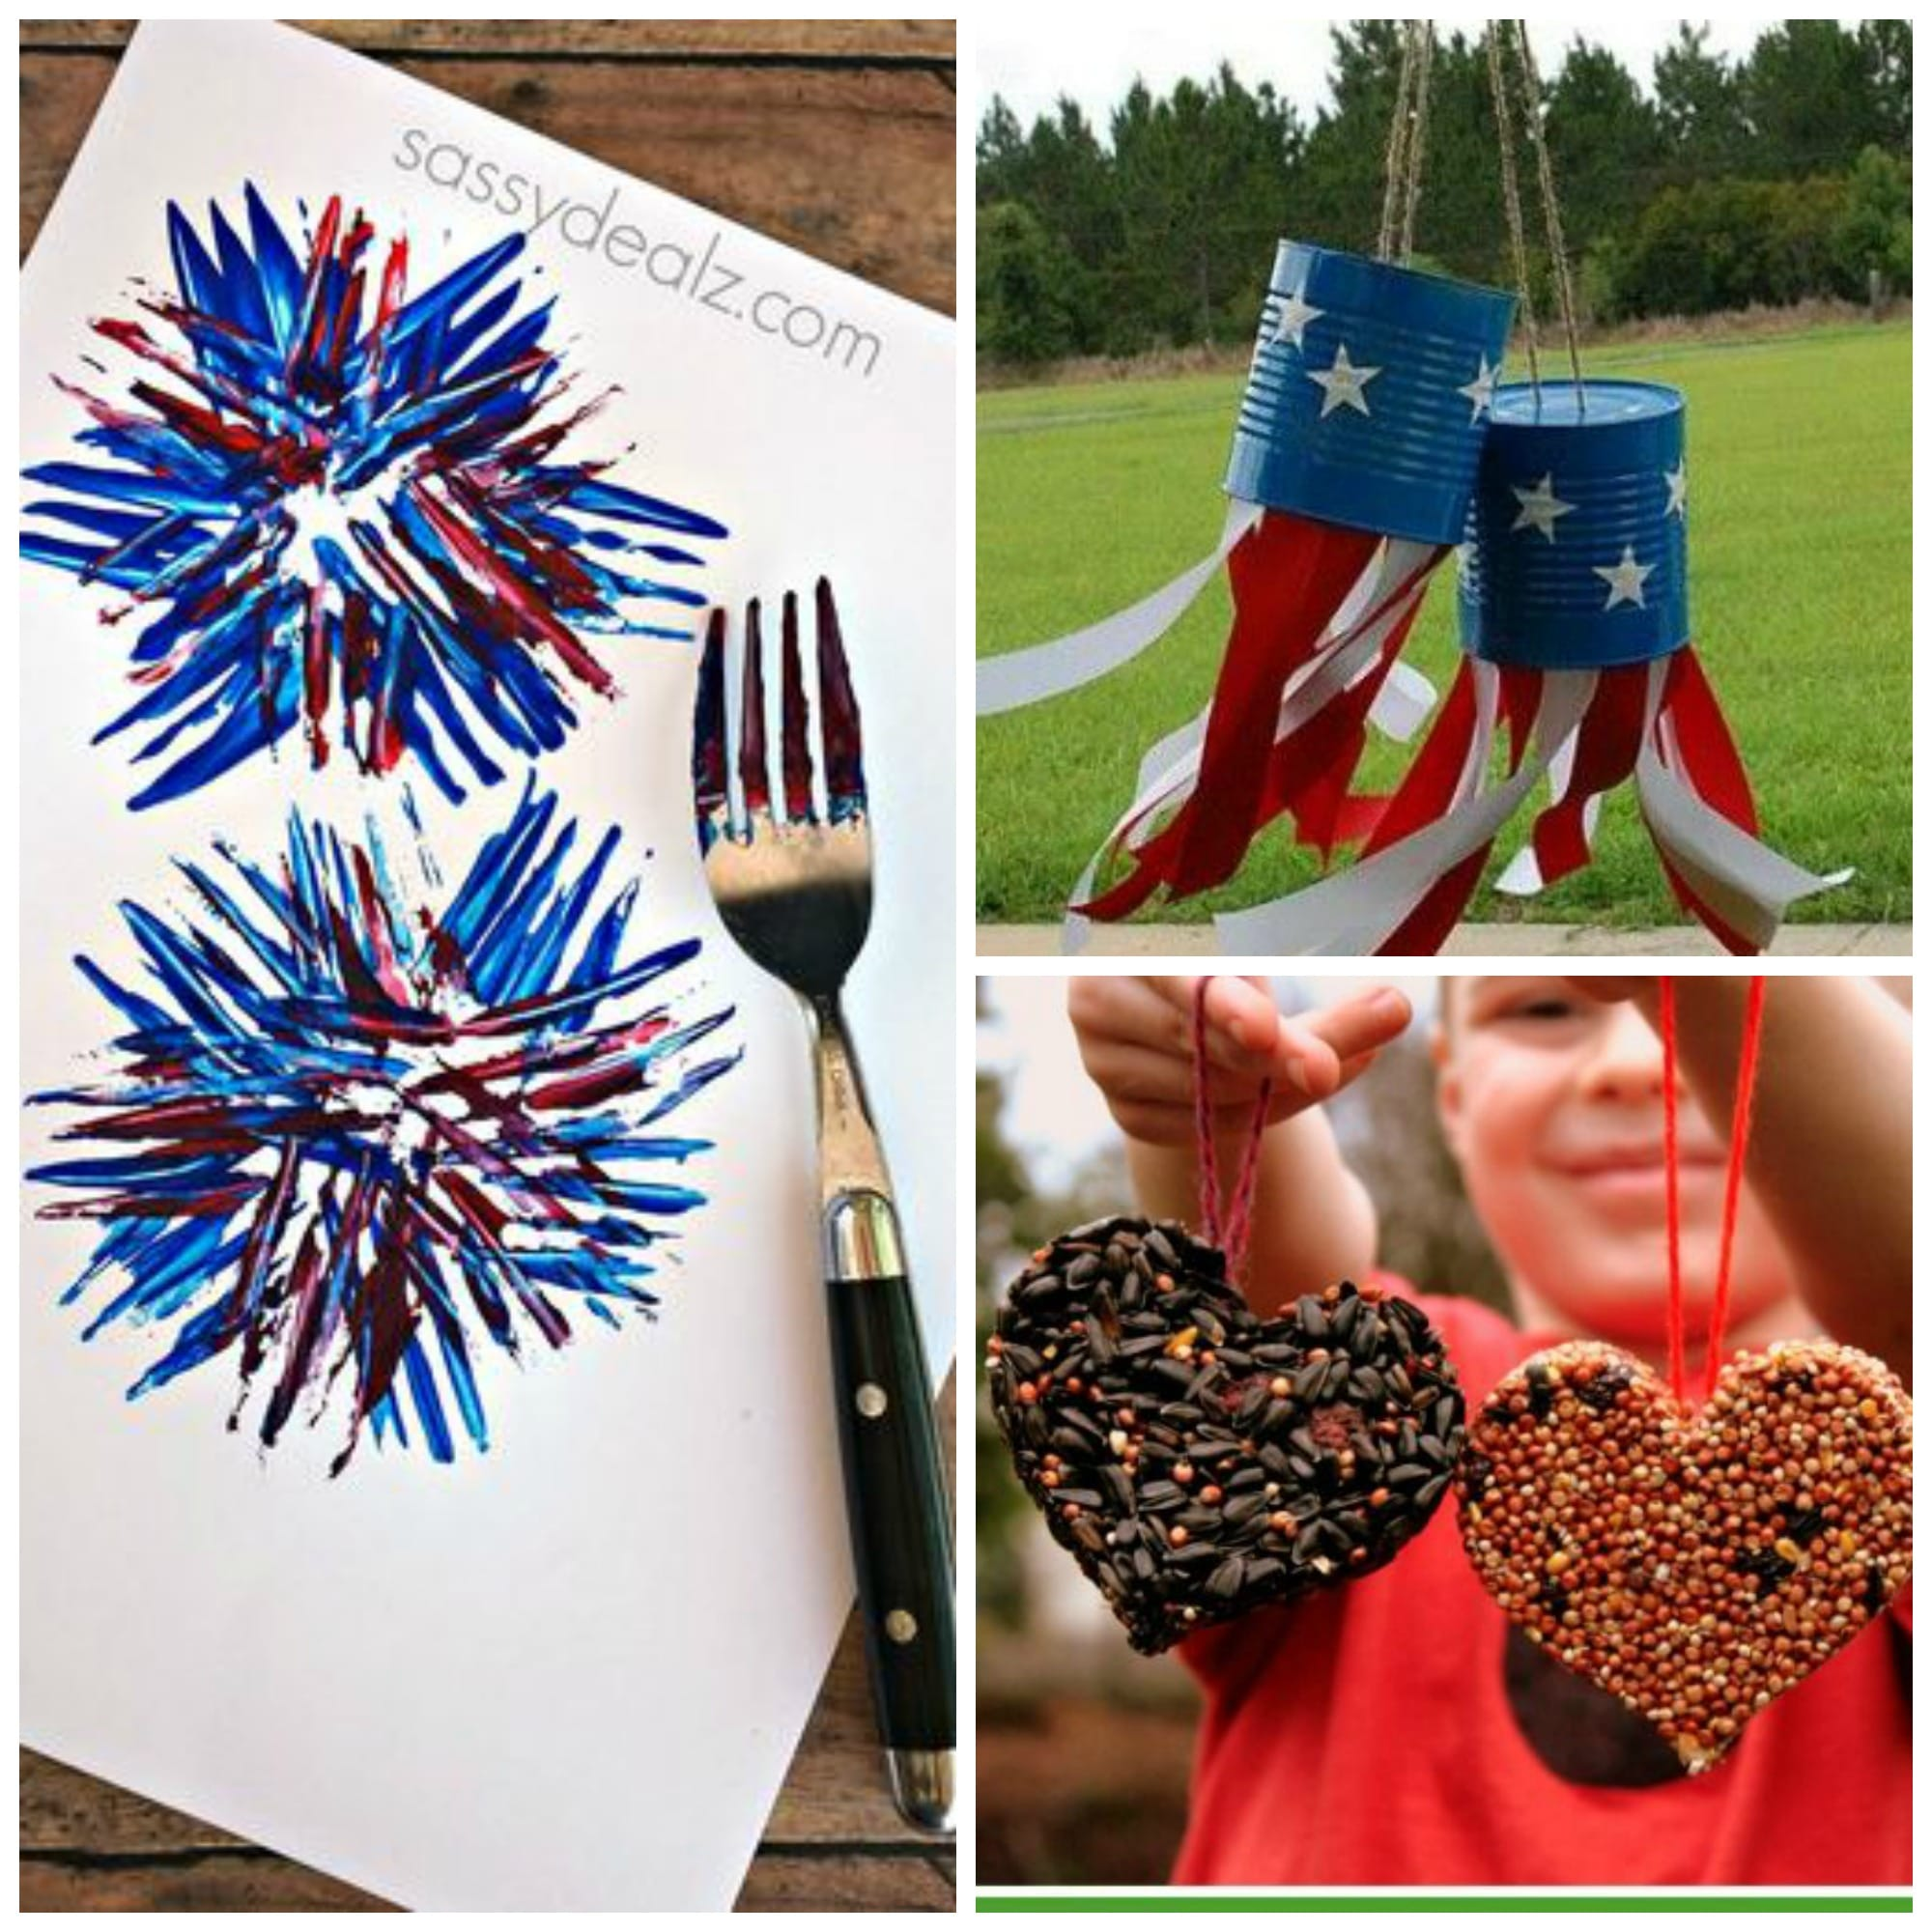 Kids Craft Ideas From Pinterest Red Ted Arts Blog